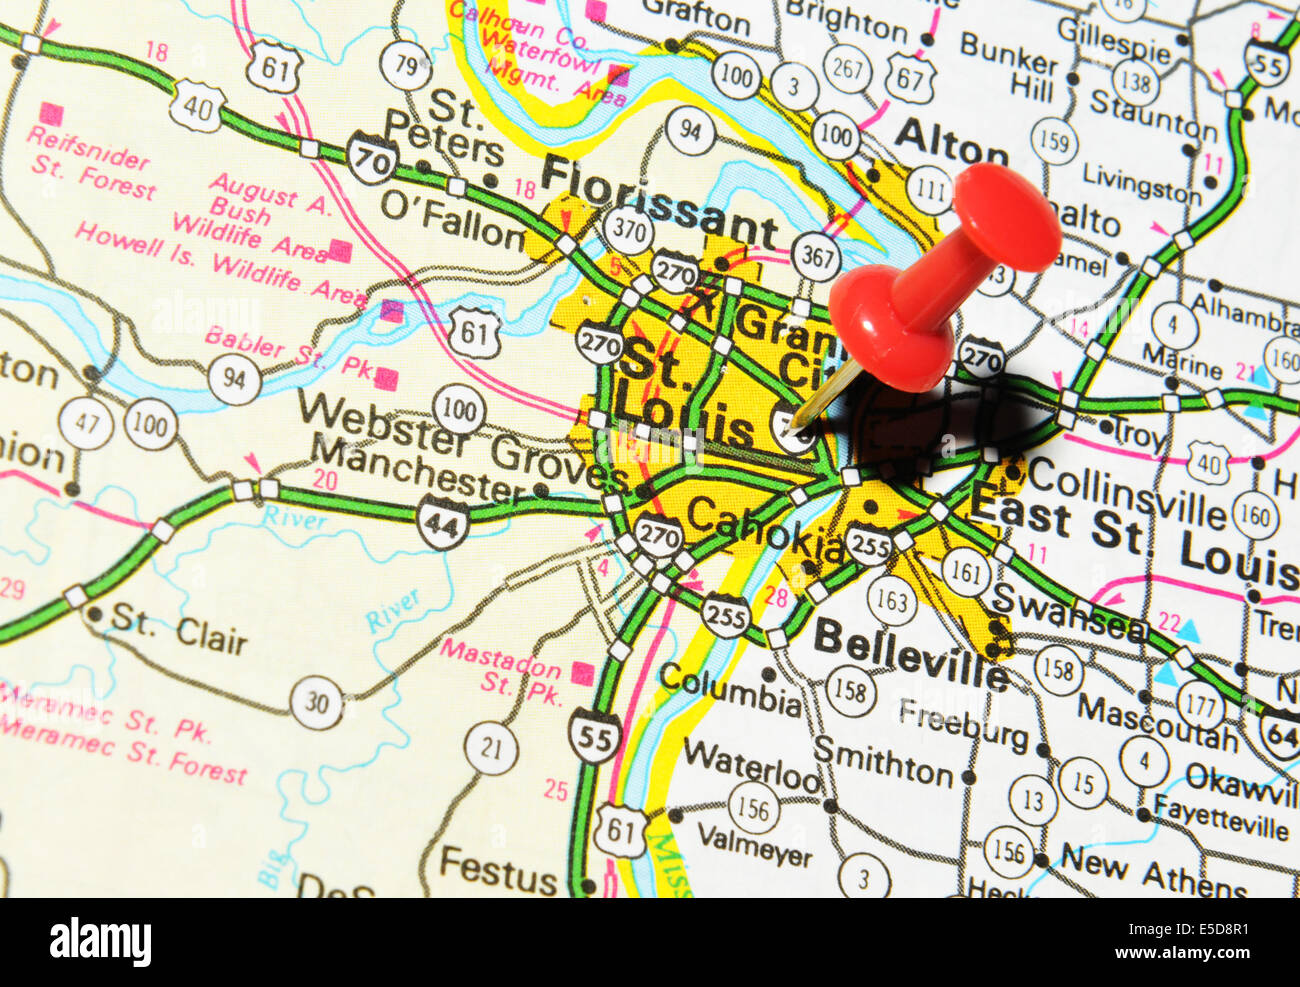 St. Louis on US map Stock Photo: 72207045 - Alamy